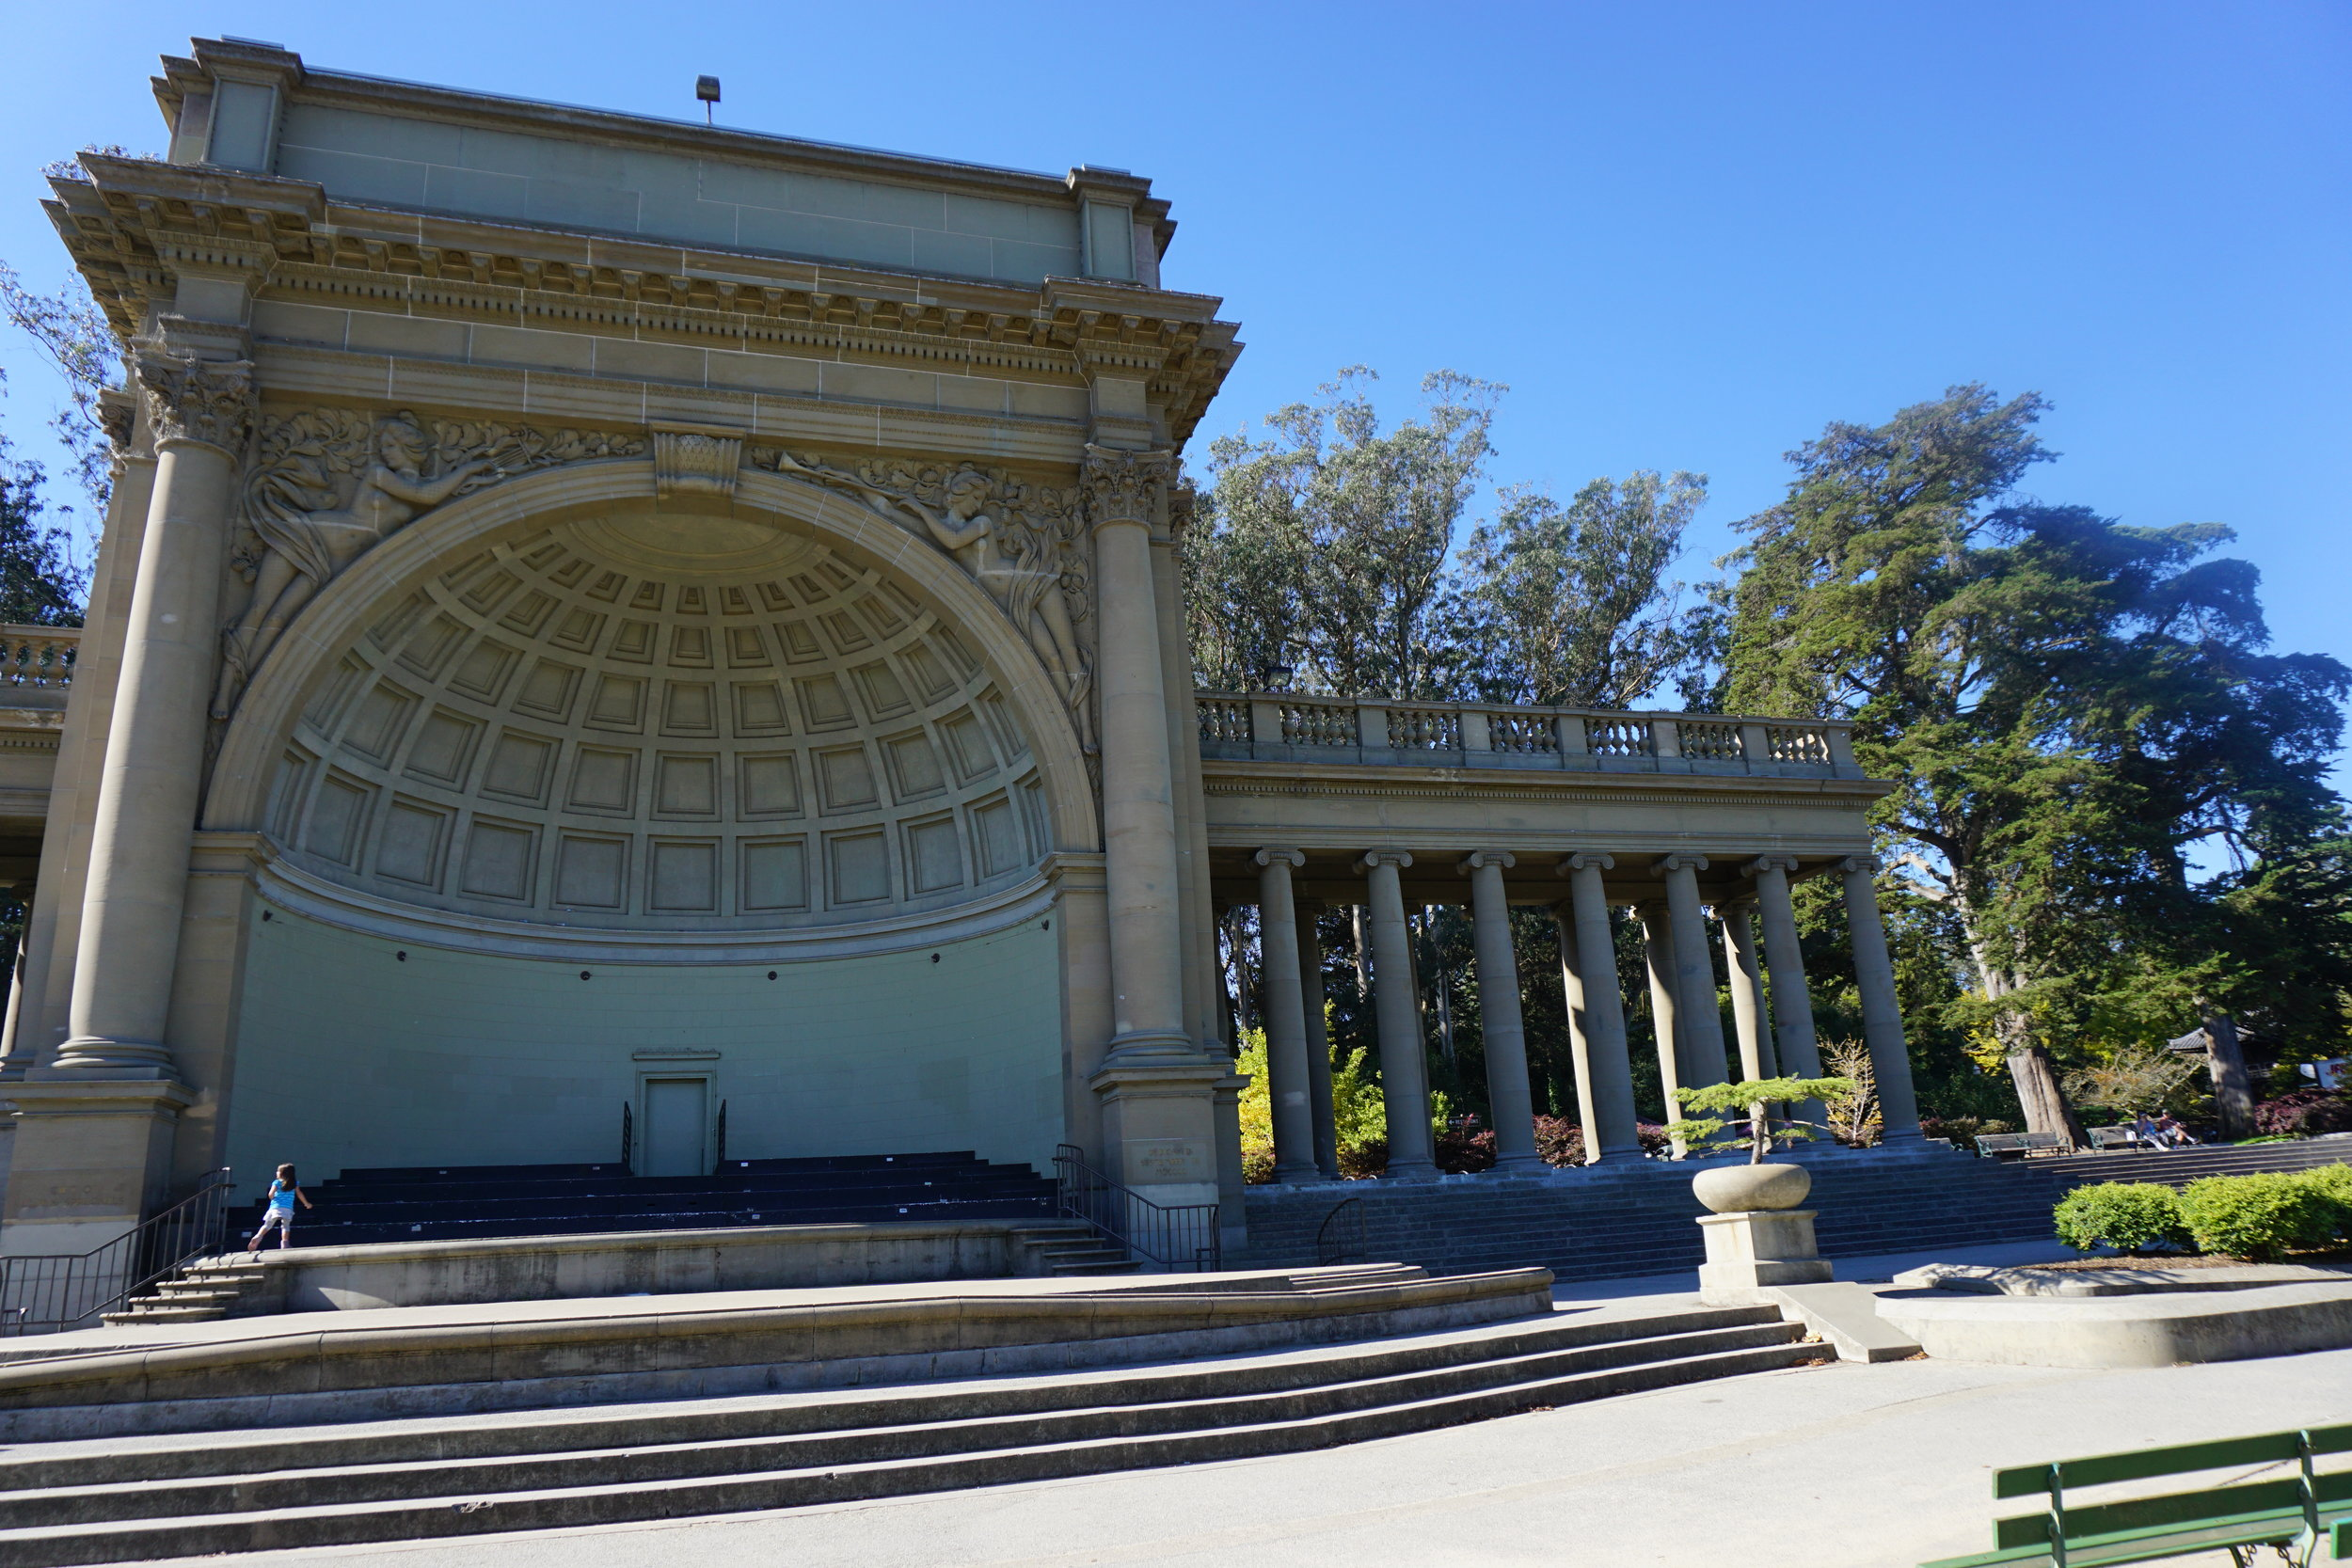 Music Concourse in Golden Gate Park